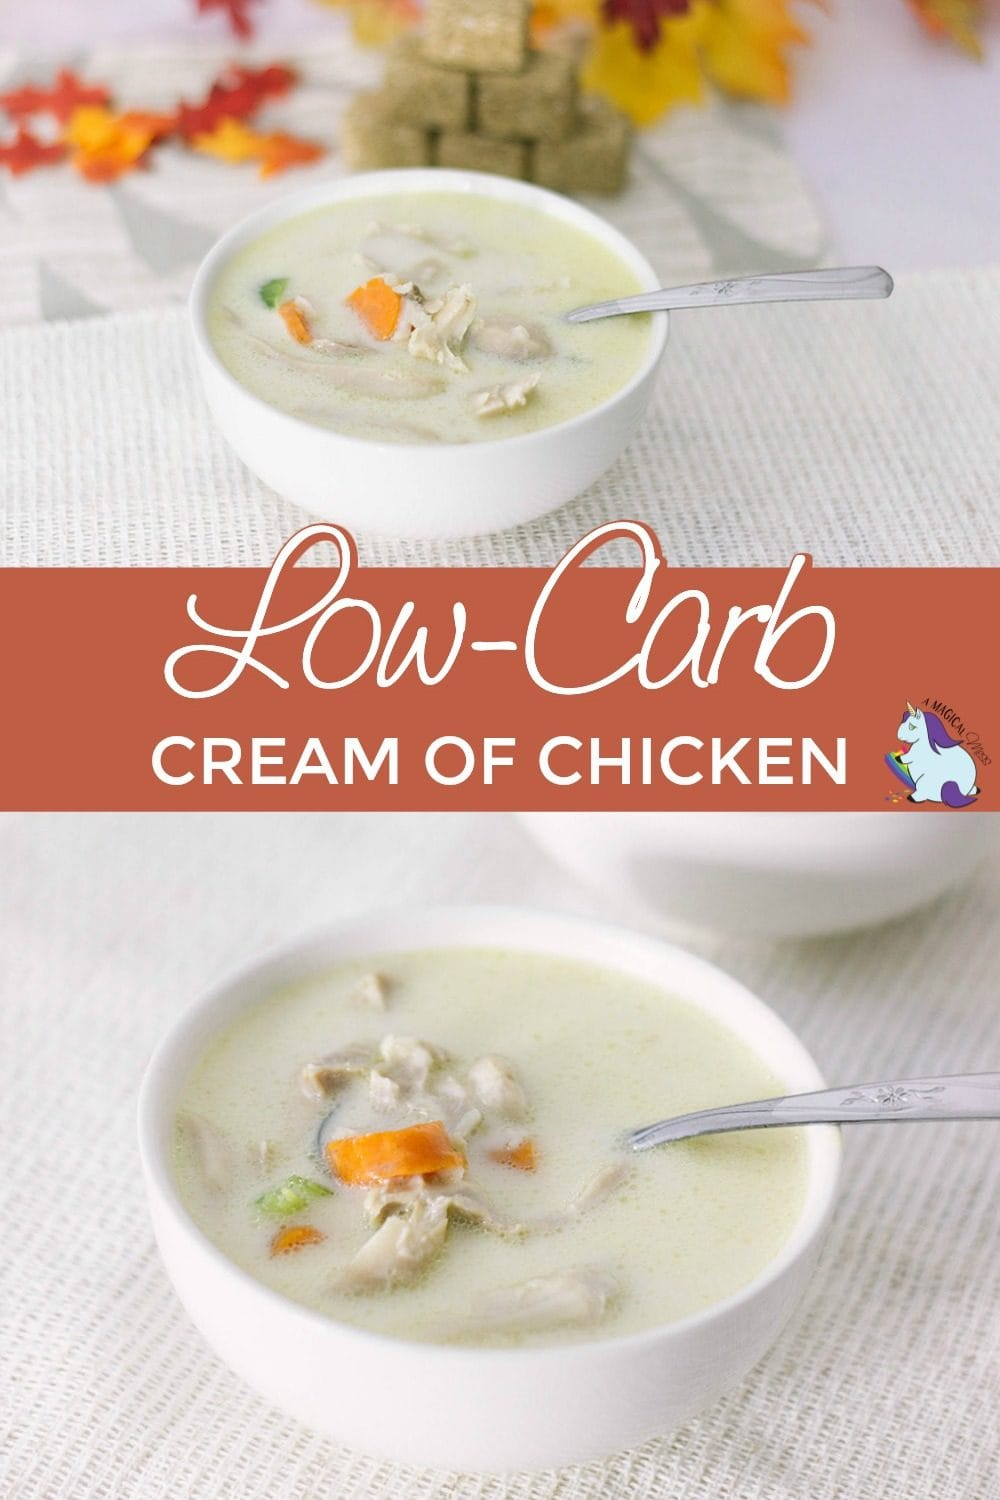 Cream of chicken soup with carrots in a bowl